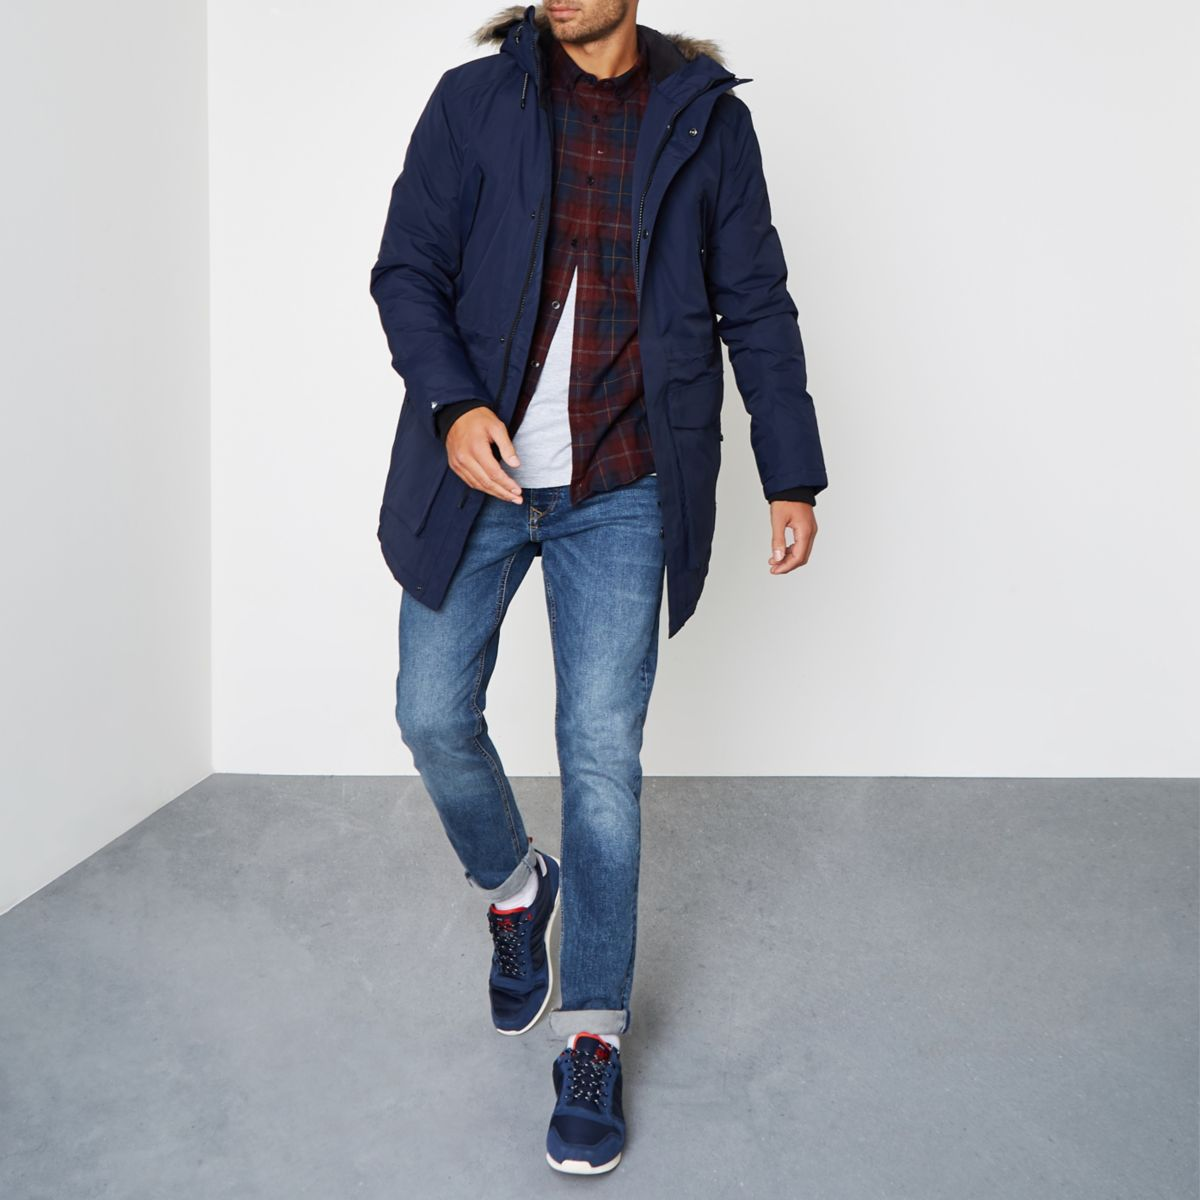 Navy Jack & Jones Tech faux fur trim parka